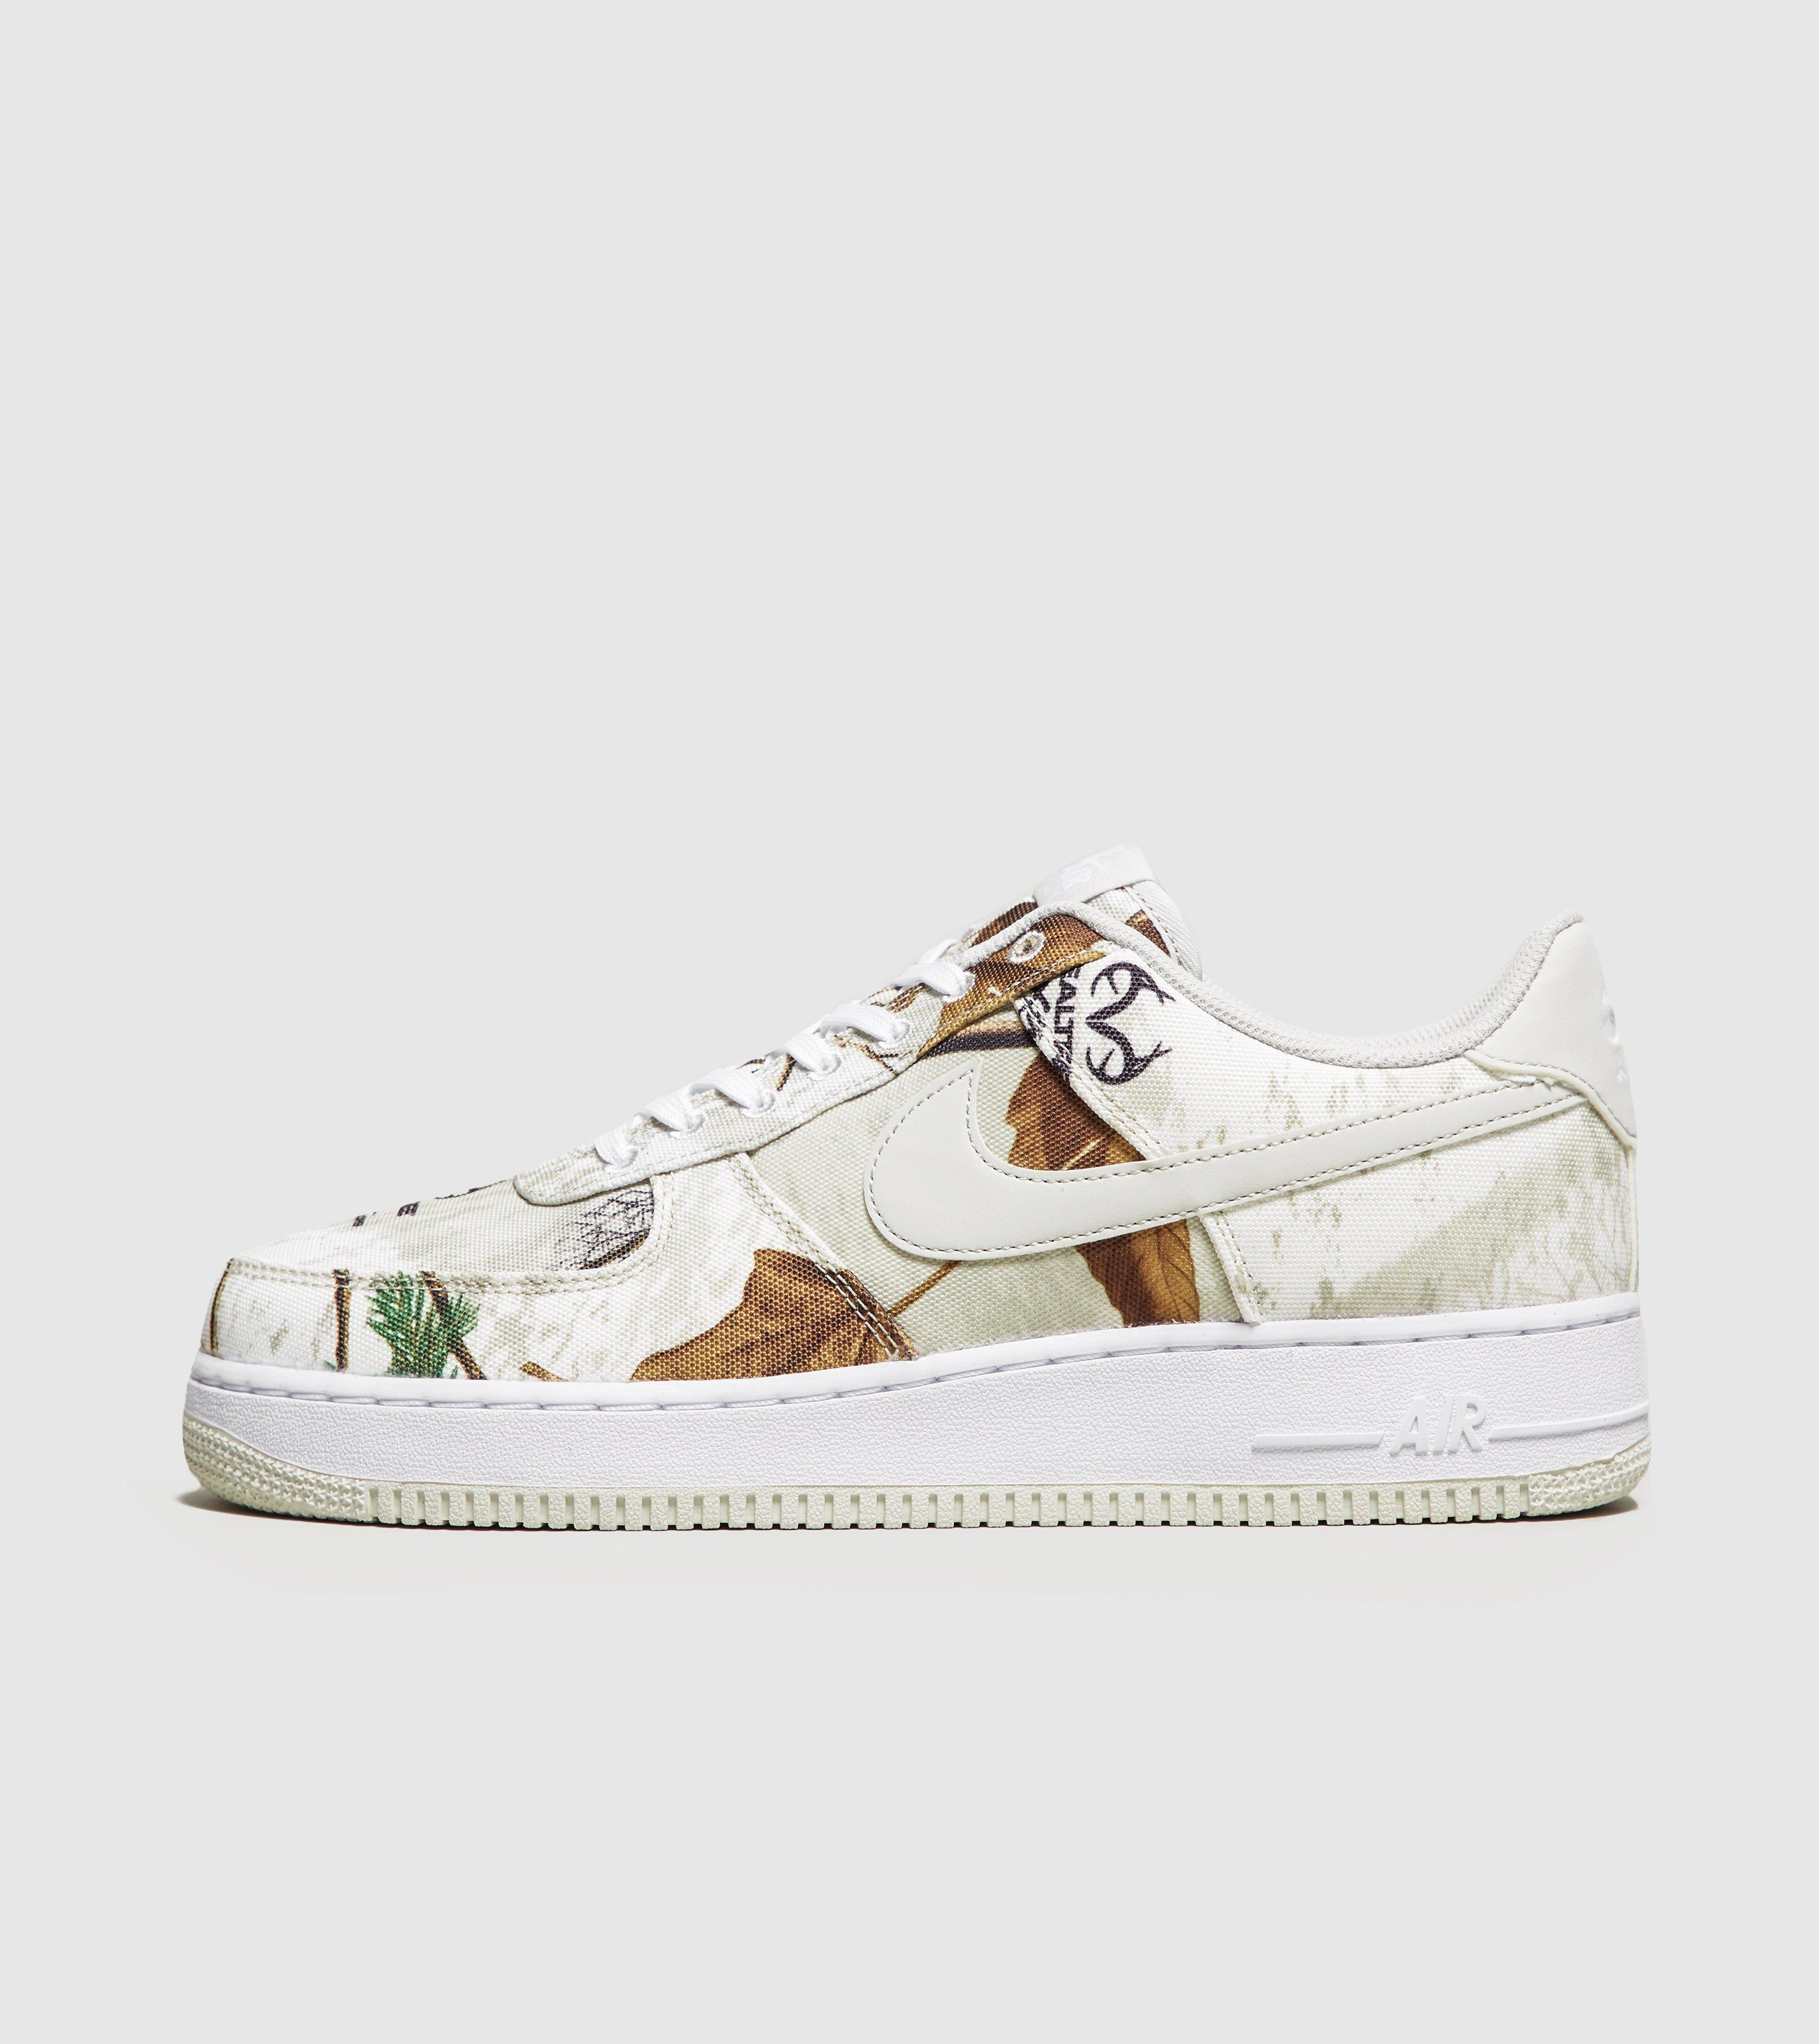 b31795582d591 Nike Air Force 1 Low 'realtree' Camo Pack in White for Men - Lyst